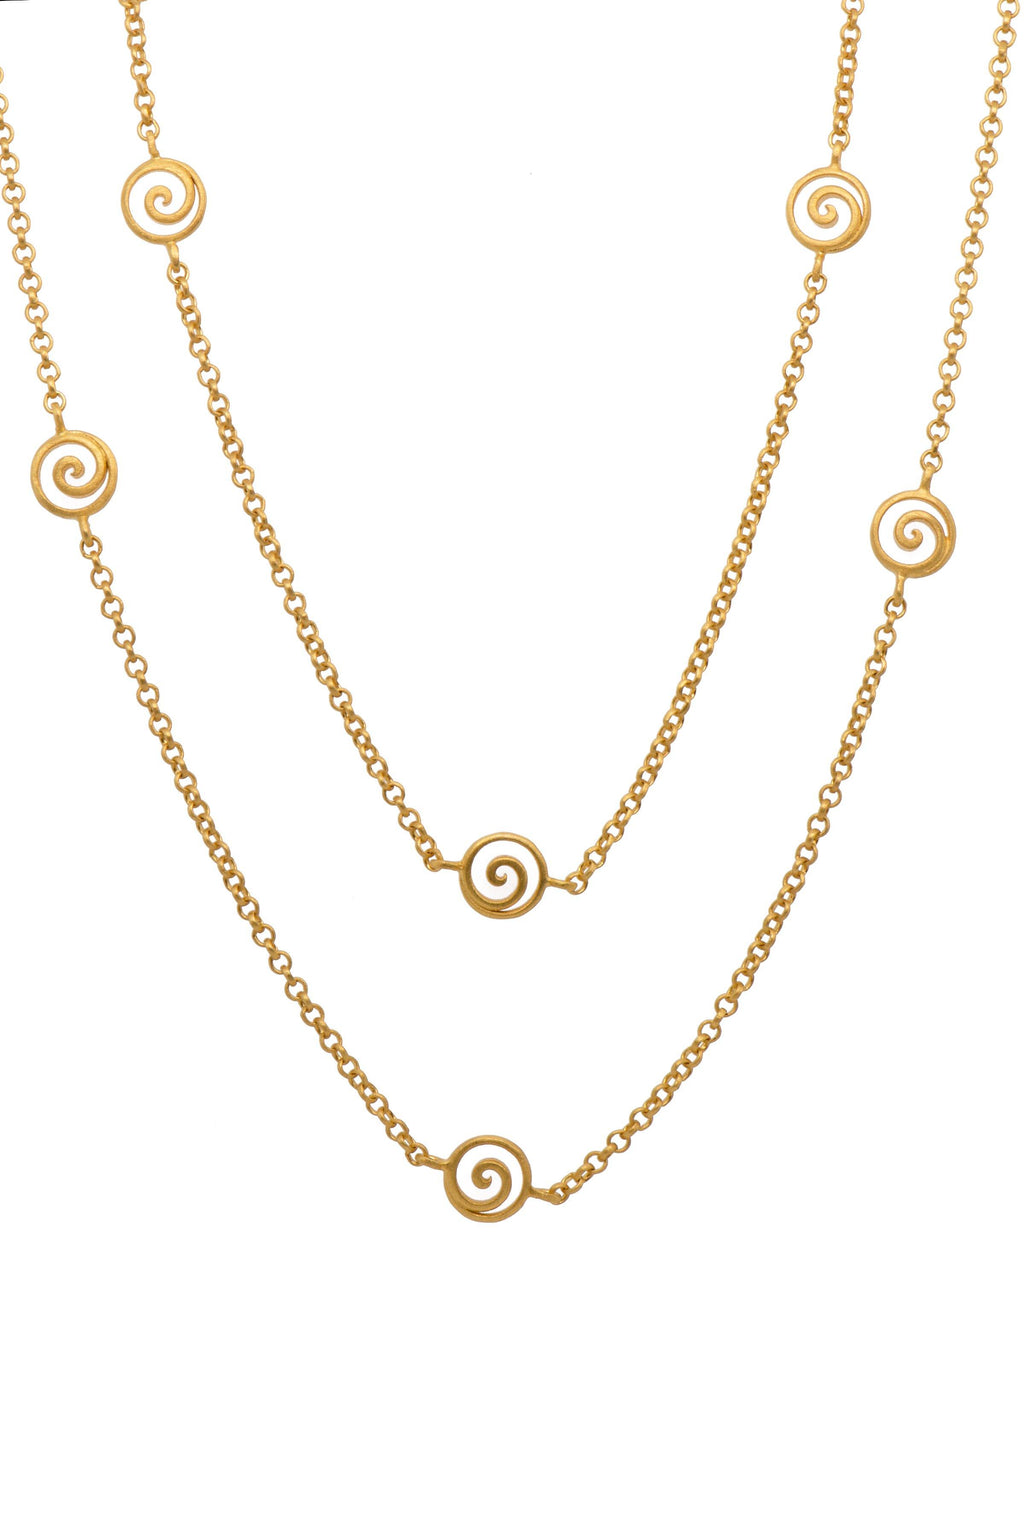 GRATITUDE SWIRL NECKLACE 36""